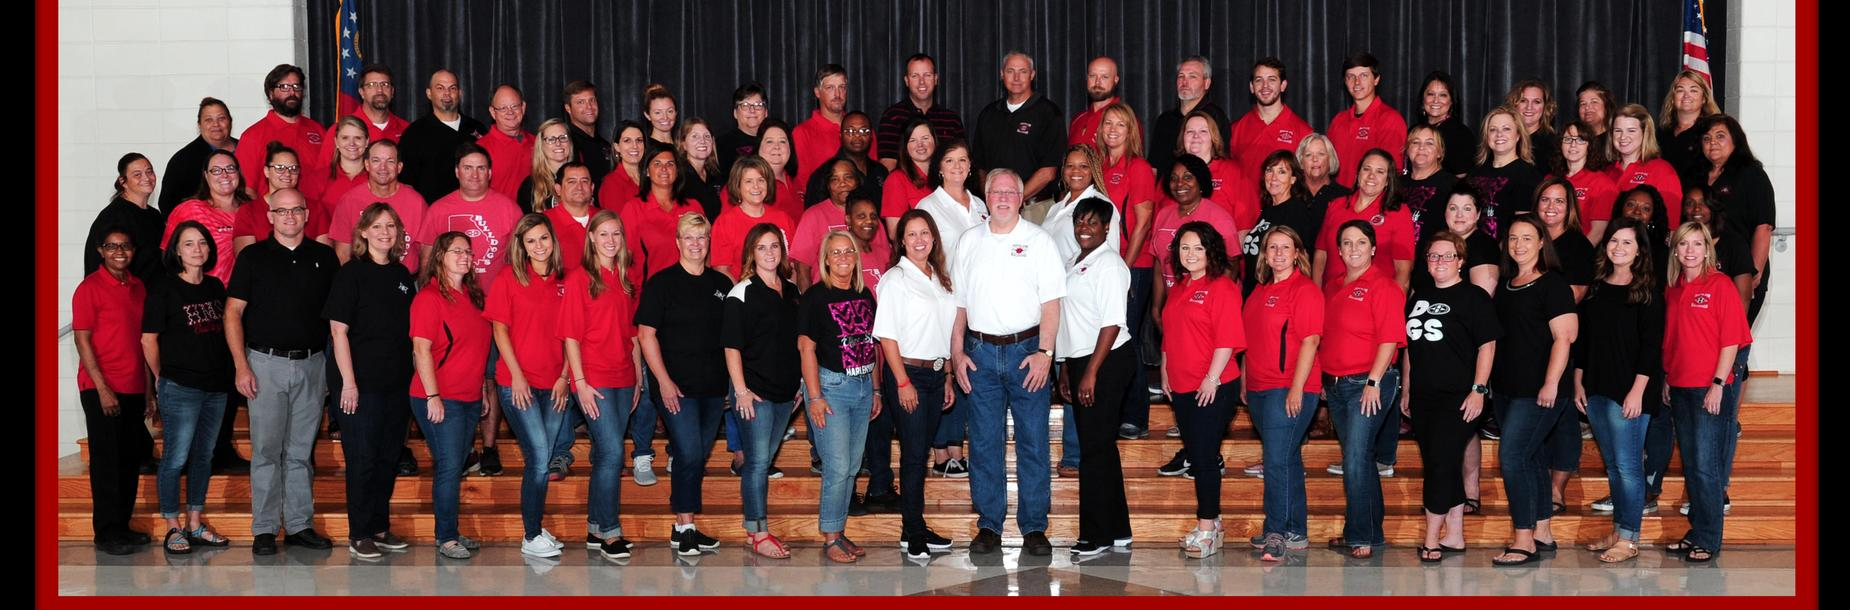 18-19 Faculty and Staff